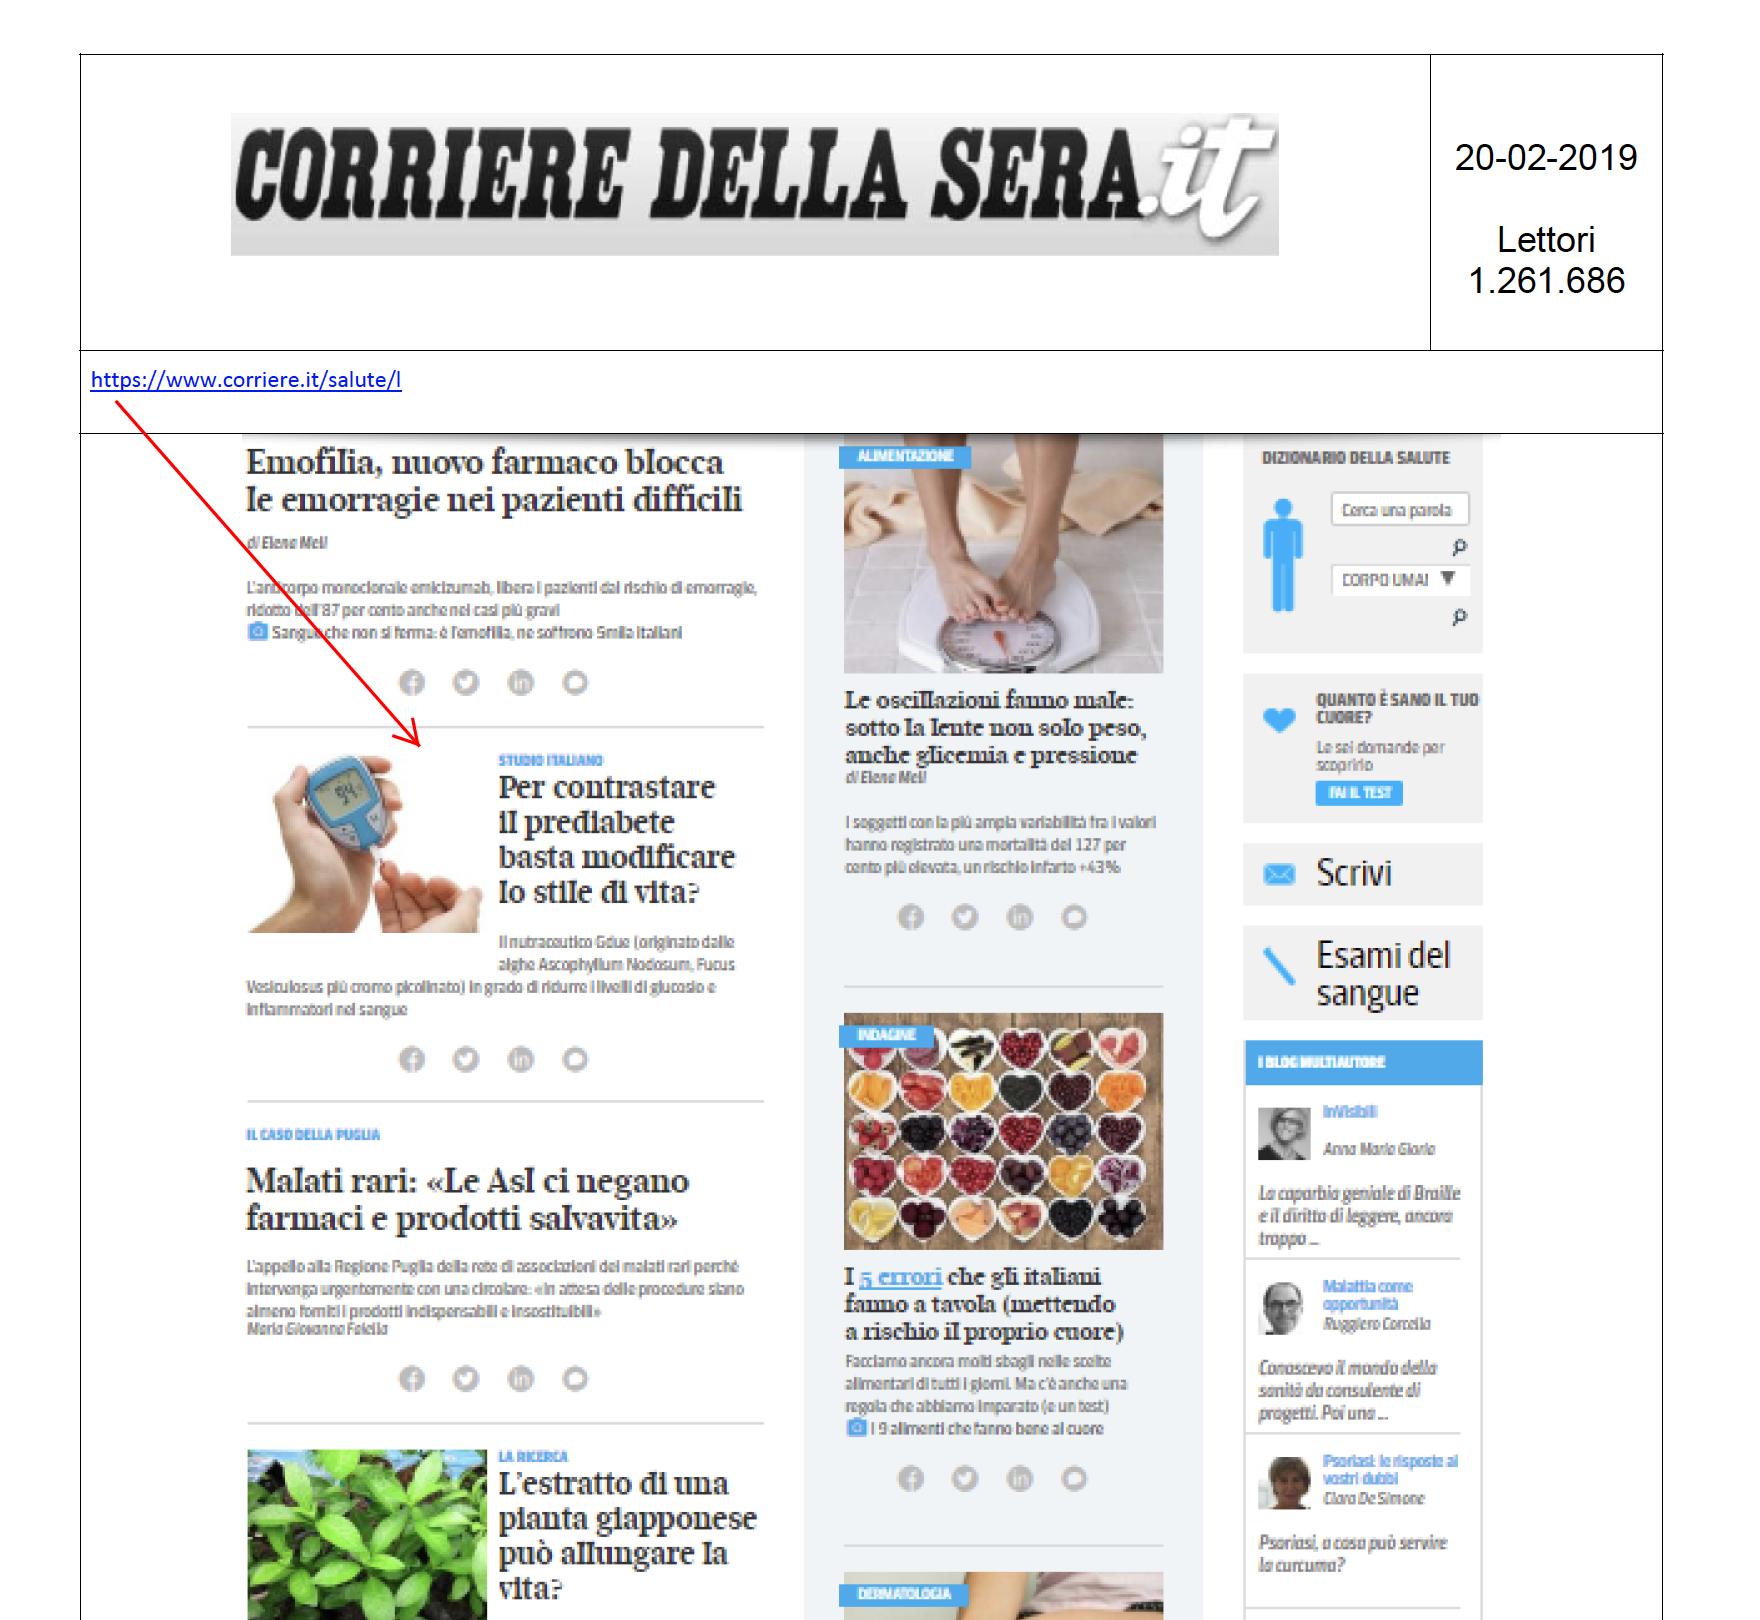 20.02.2019 - CORRIEREDELLASERA.IT